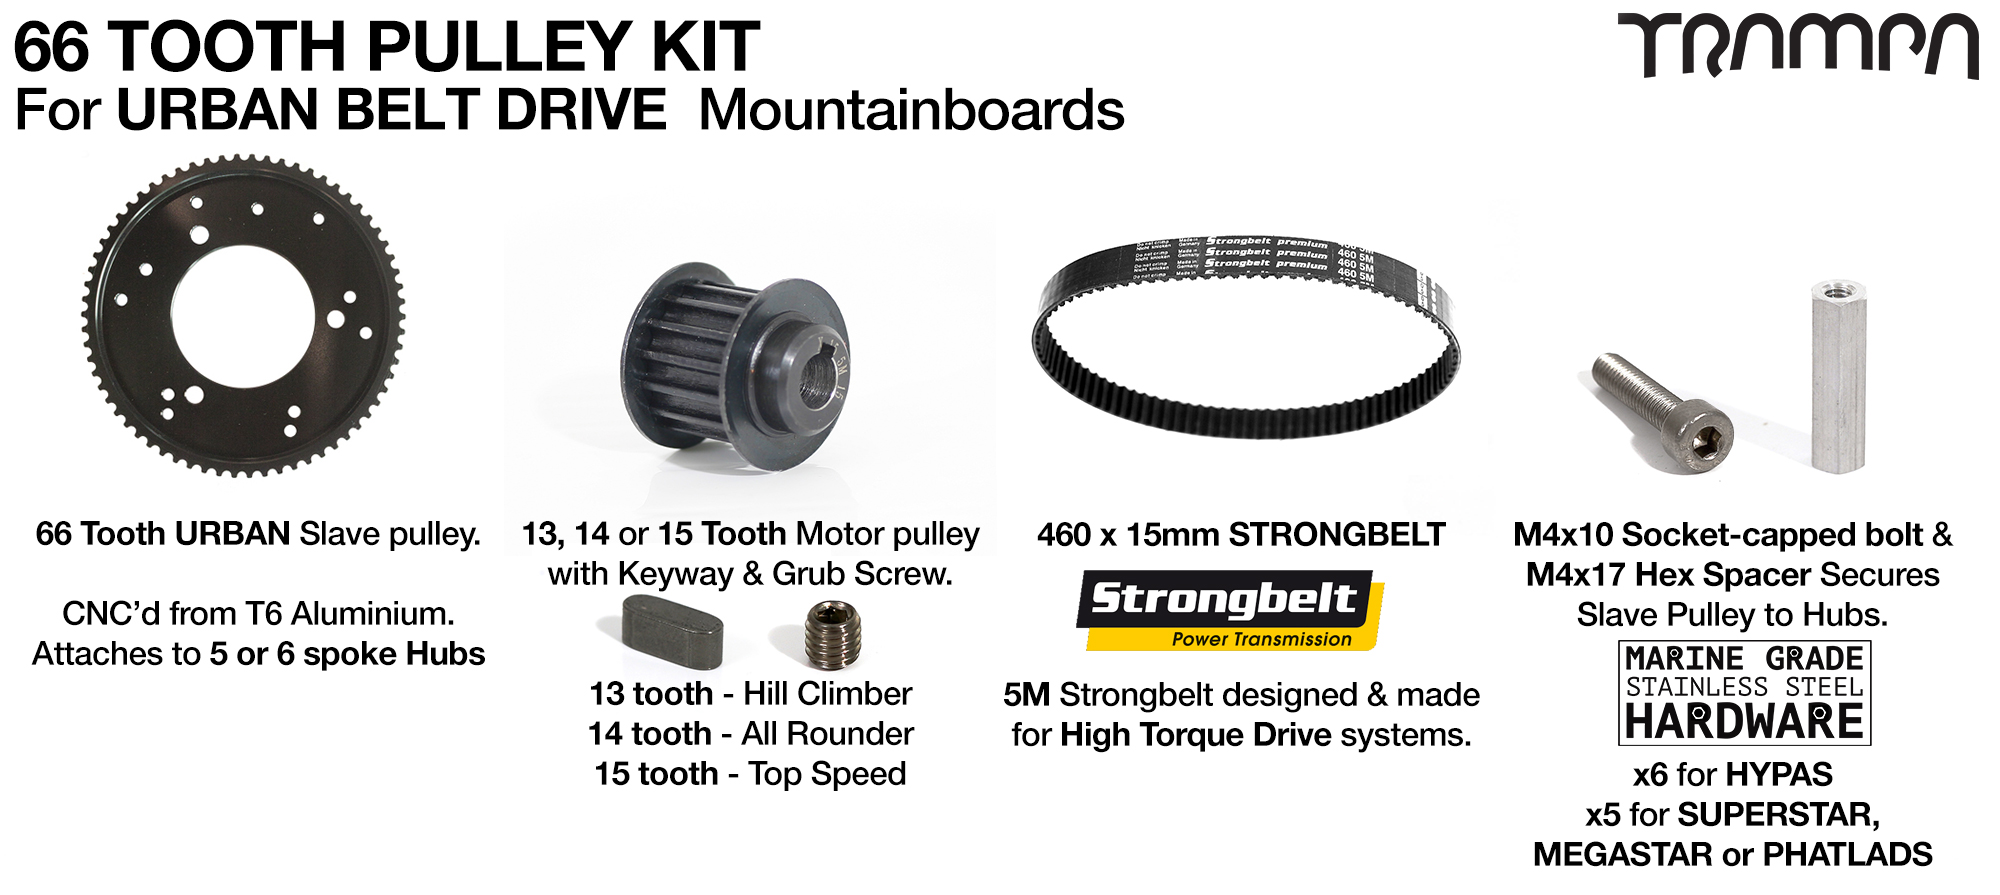 URBAN MTB Pulley Kit with 66 Tooth Slave & 460mm BELT for 7 or 8 Inch Wheels on HYPA or SUPERSTAR hubs